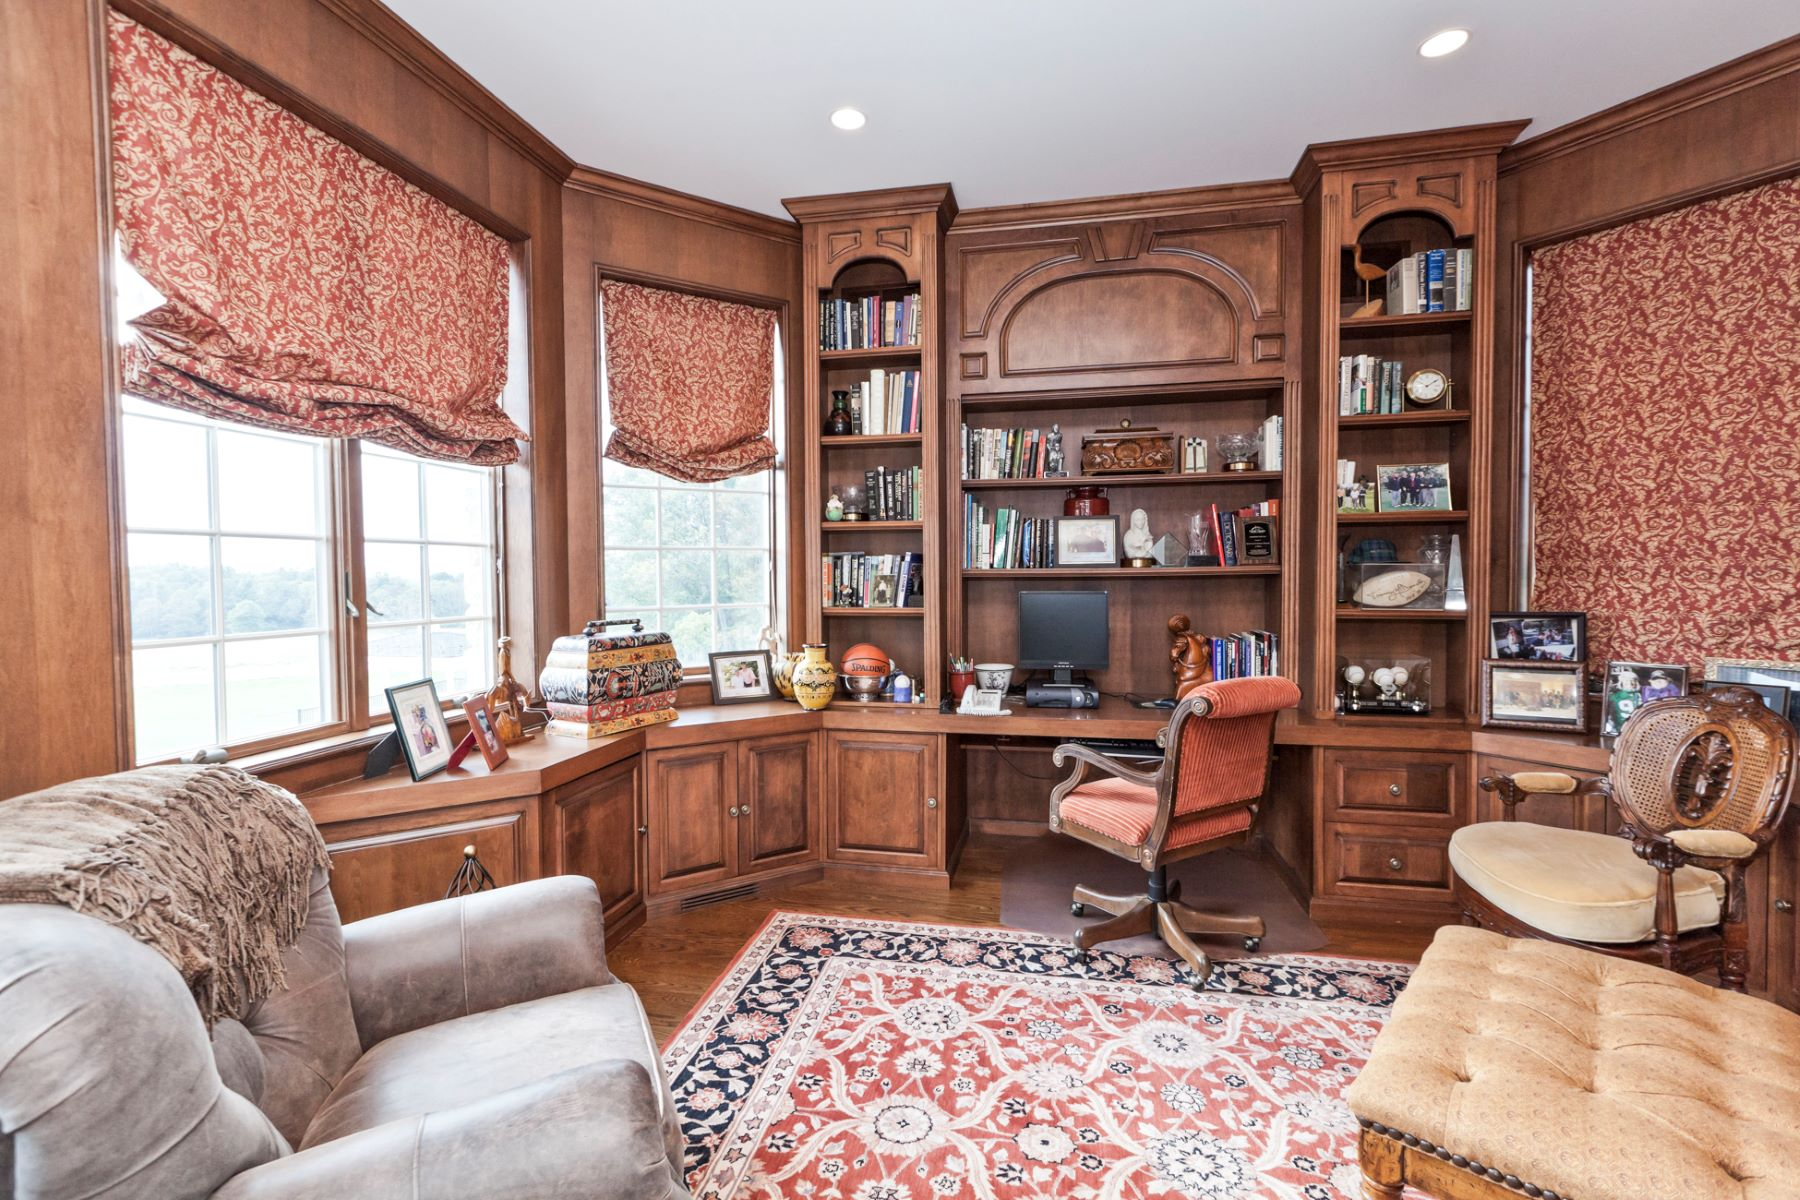 Additional photo for property listing at Offers Ideal Setting For Country Estate 131-133 Harbourton Woodsville Road, Lambertville, Nueva Jersey 08530 Estados Unidos